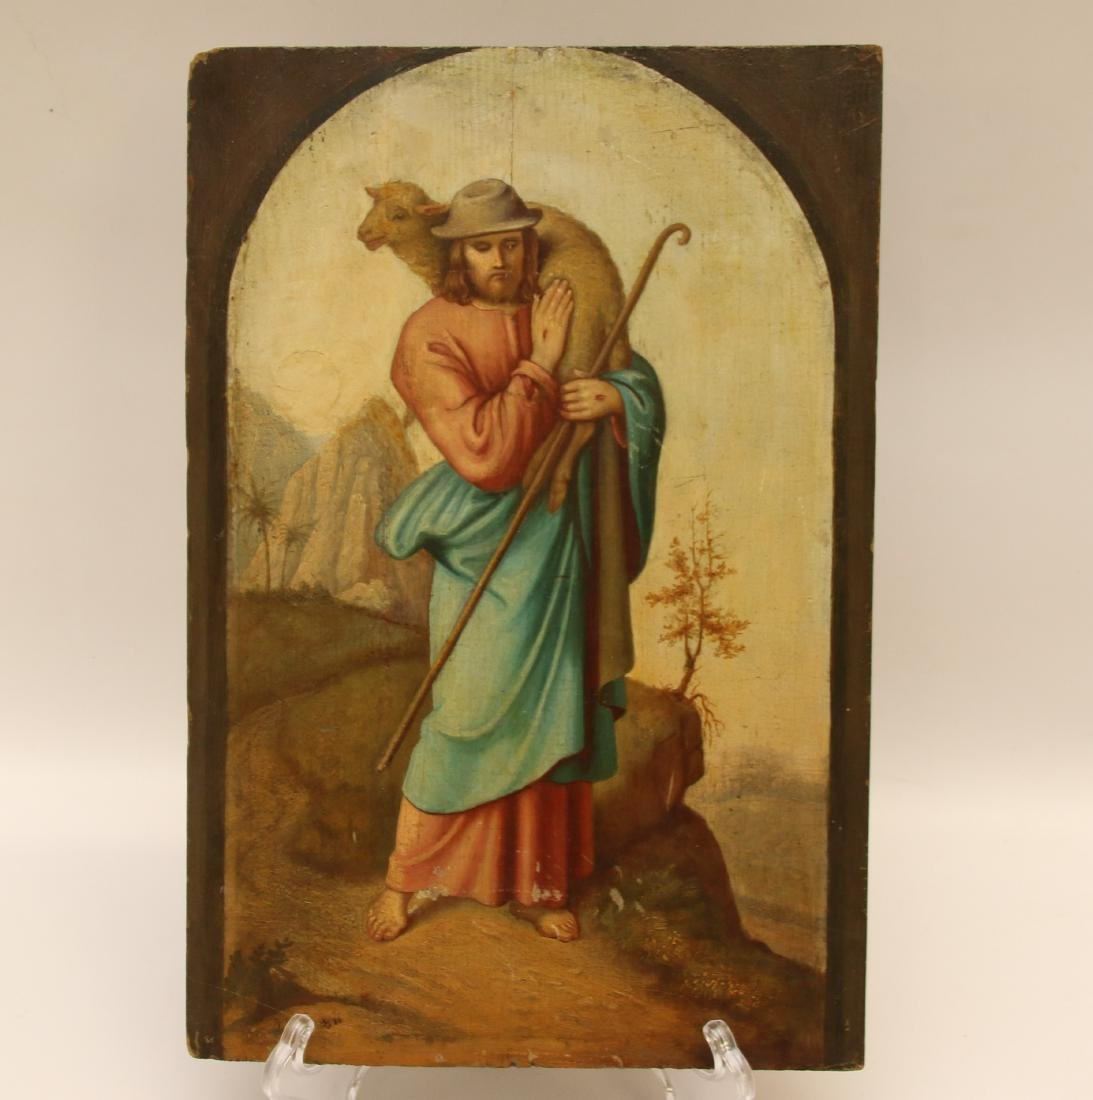 HAND PAINTED WOODEN PANEL